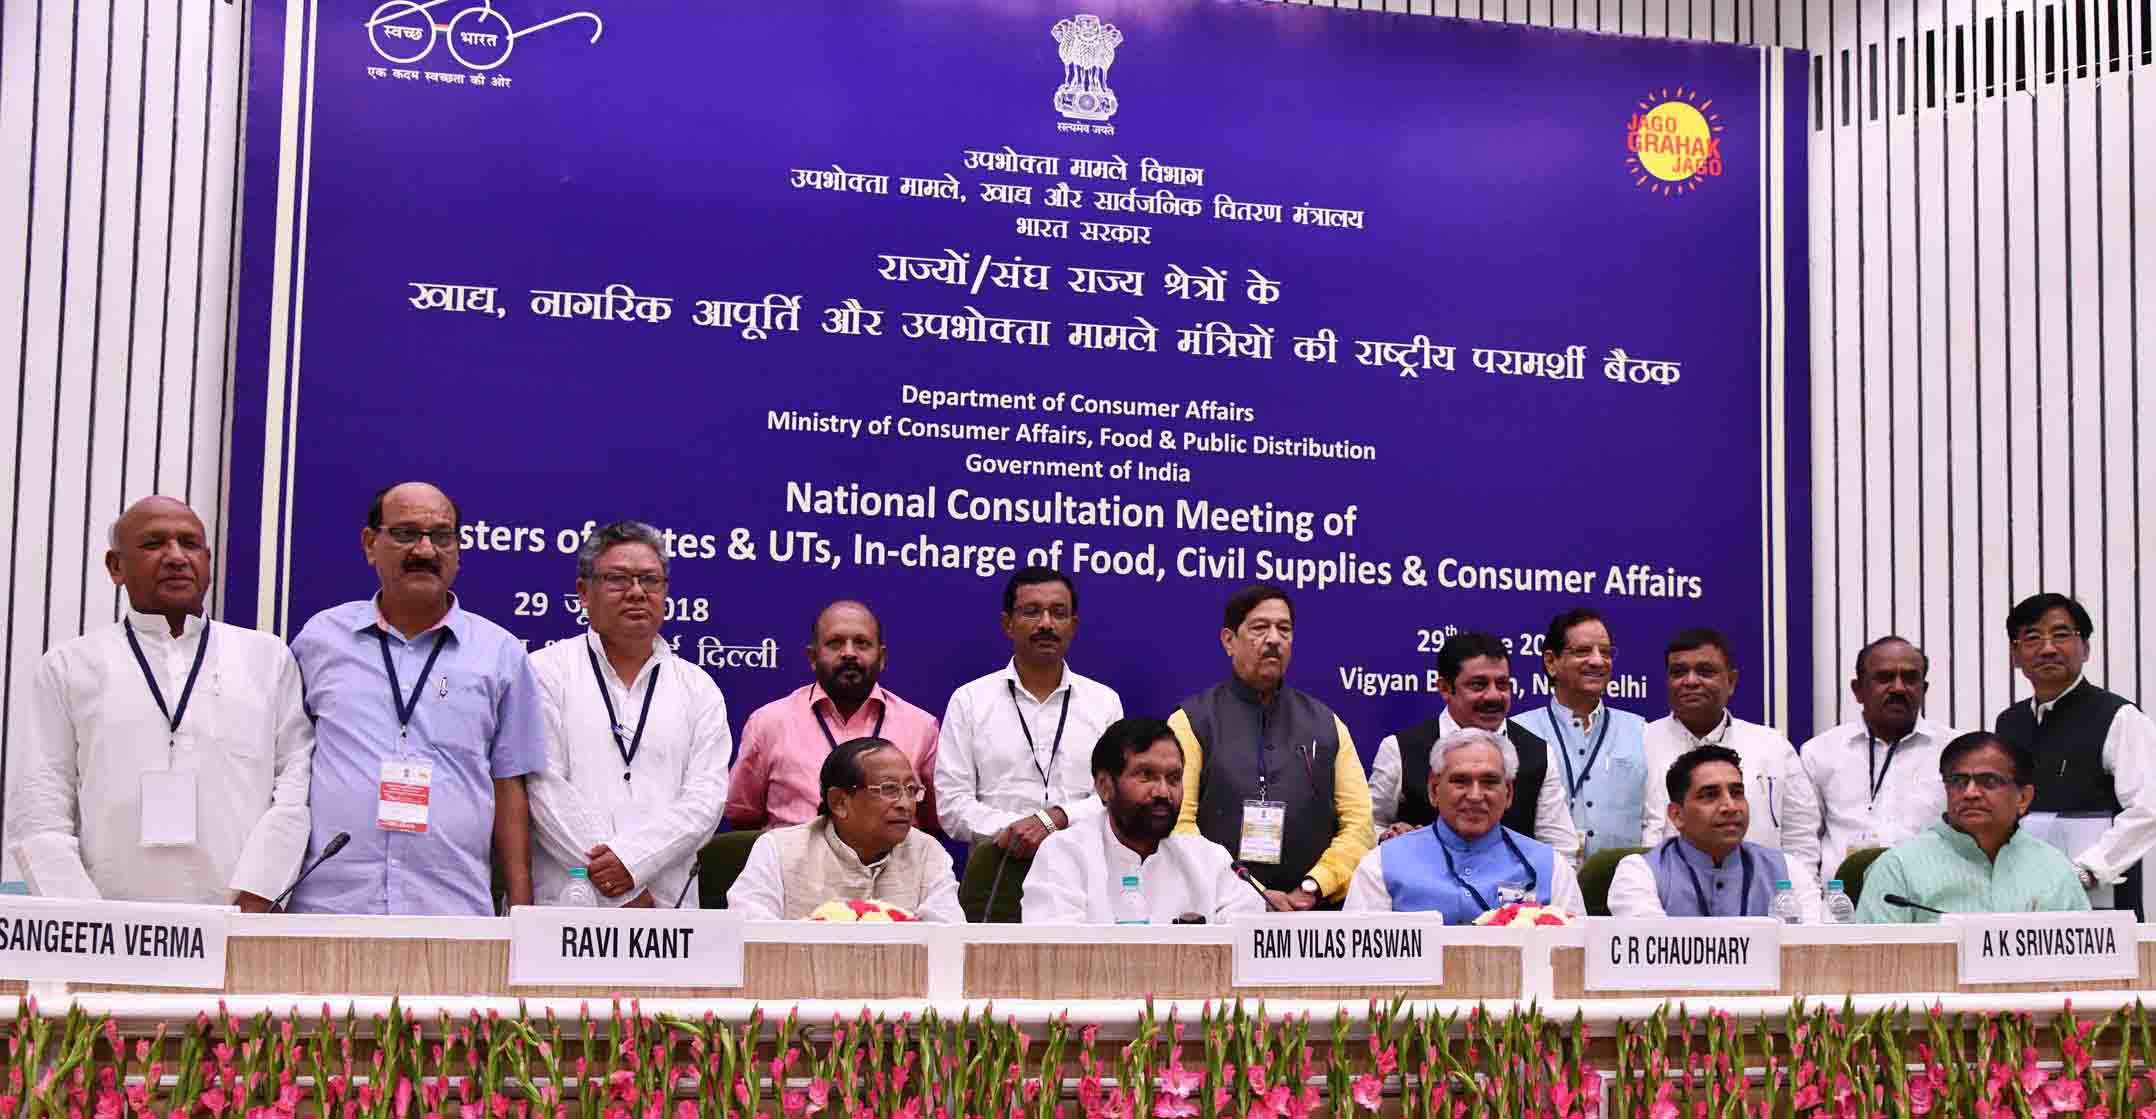 File Ram Vilas Paswan In A Group Photograph At The 4th National Consultation Meeting Of Ministers Of States Uts In Charge Of Food Civil Supplies And Consumer Affairs In New Delhi Jpg Wikimedia